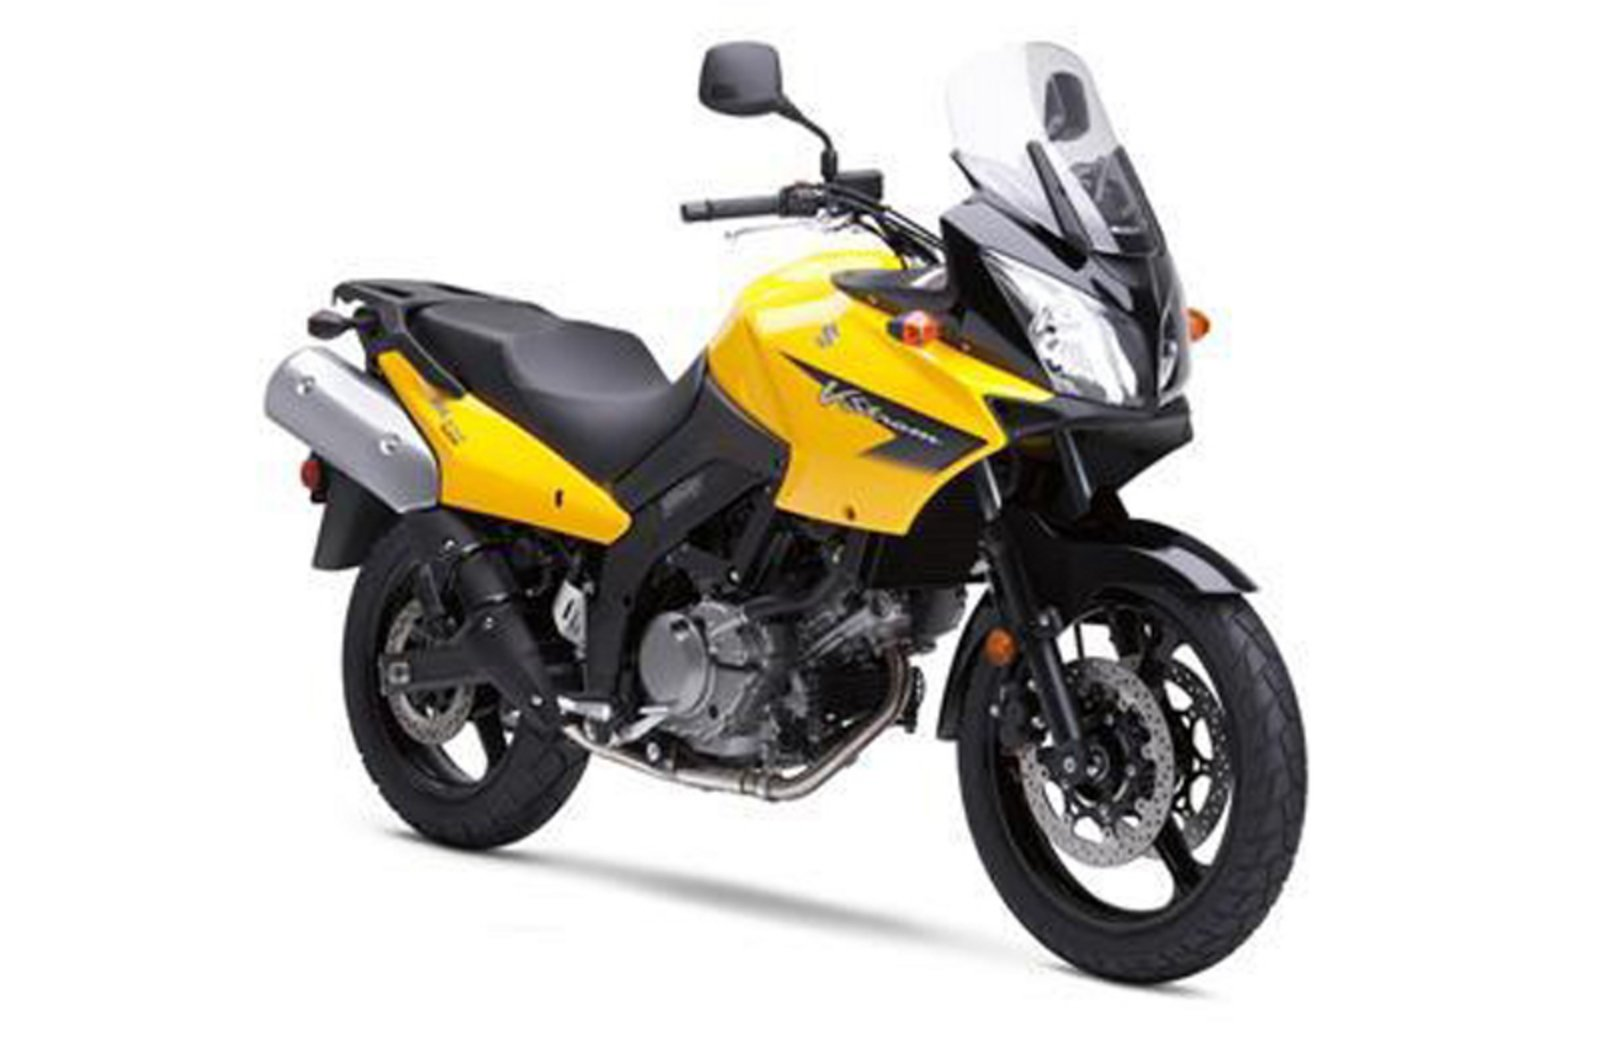 2008 suzuki v strom 650 review top speed. Black Bedroom Furniture Sets. Home Design Ideas